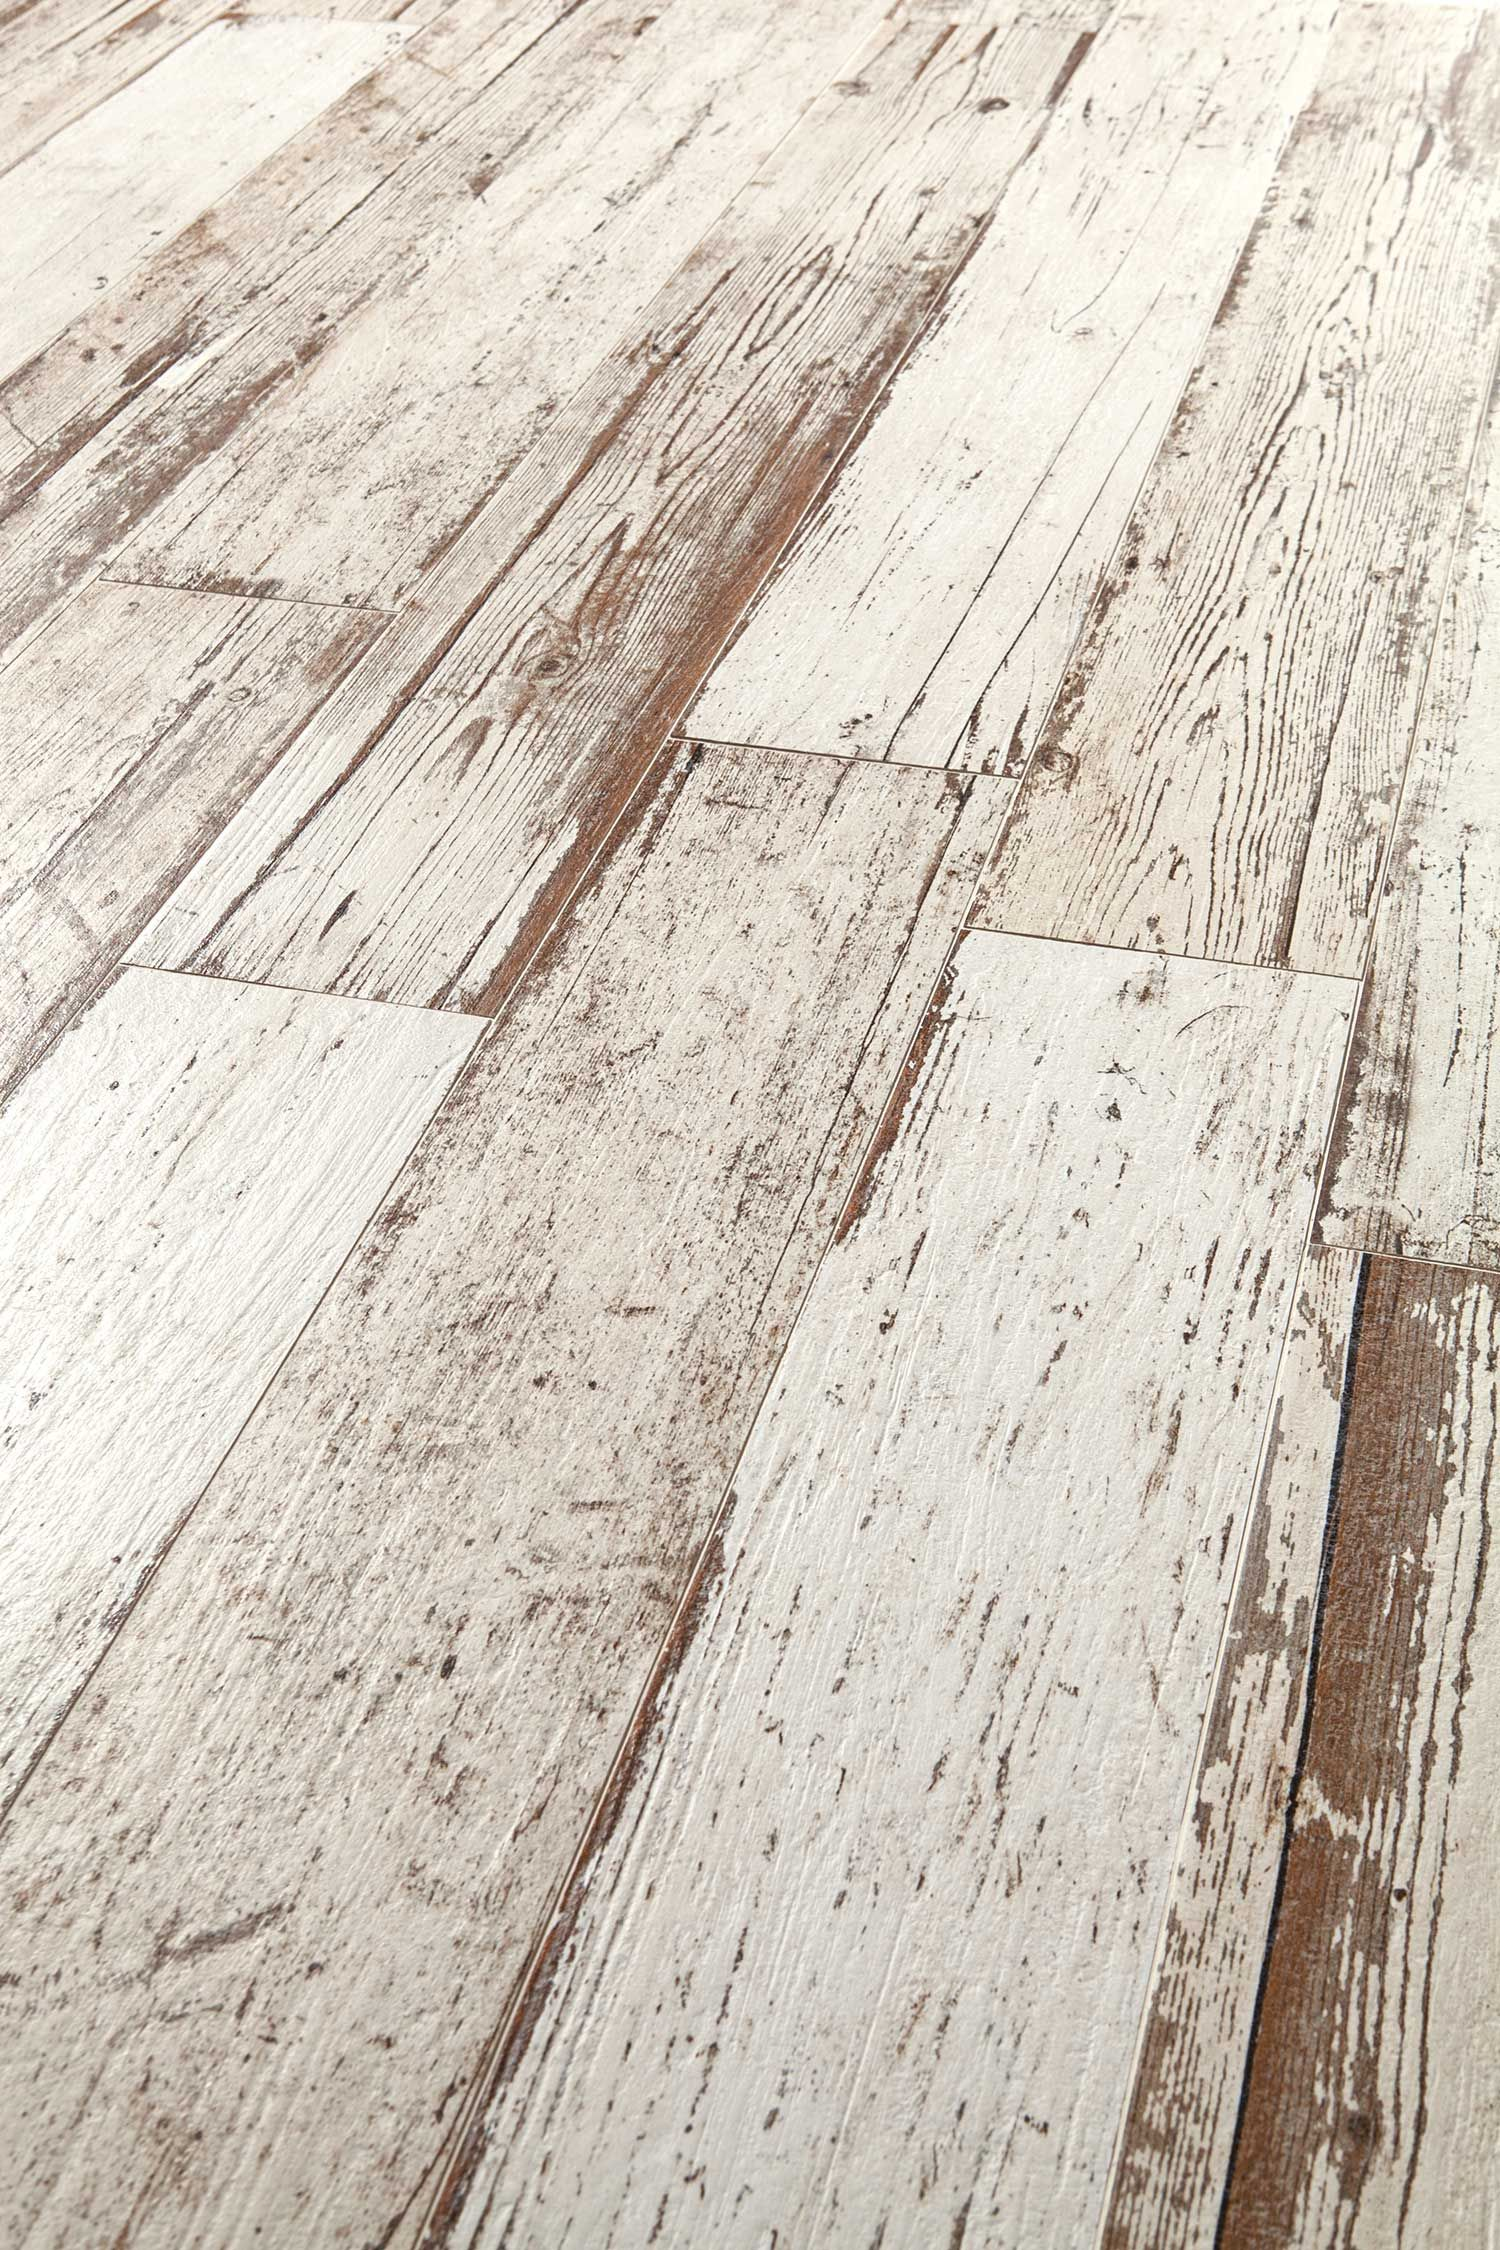 Blendart italian floor wall tile a certified green building amazing distressed wood looking tile porcelain tile that looks like distressed wood link shows various colors would be pretty for floors or backsplashes doublecrazyfo Choice Image